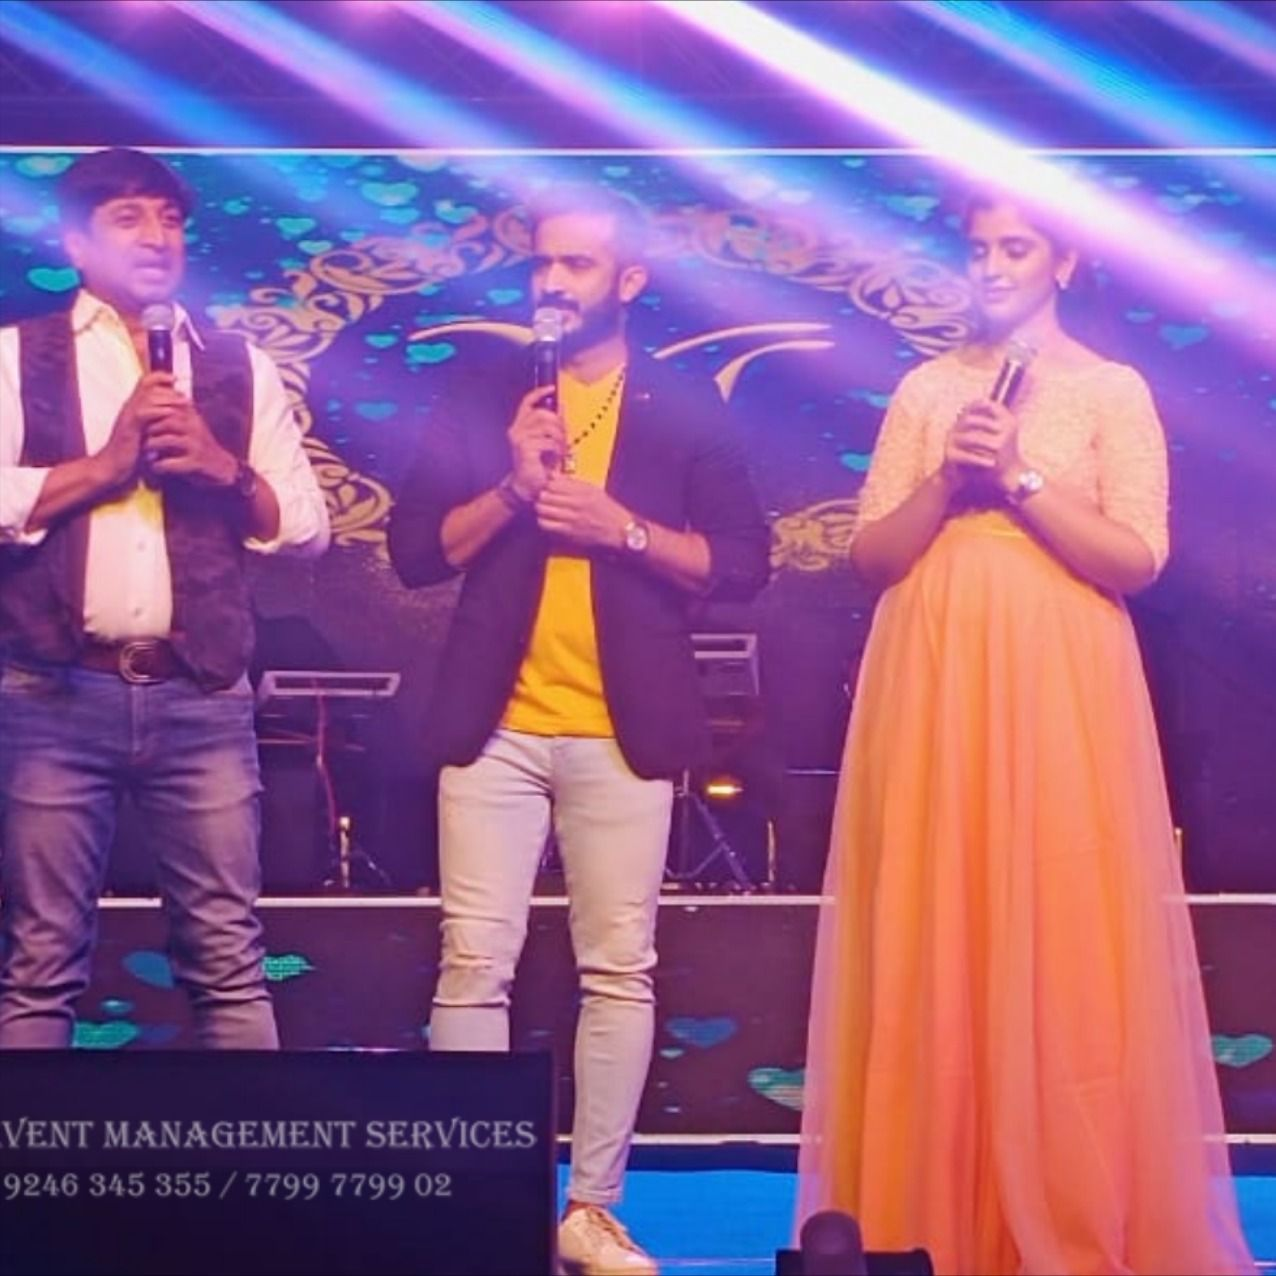 Hire the KK Event management company based in Hyderabad